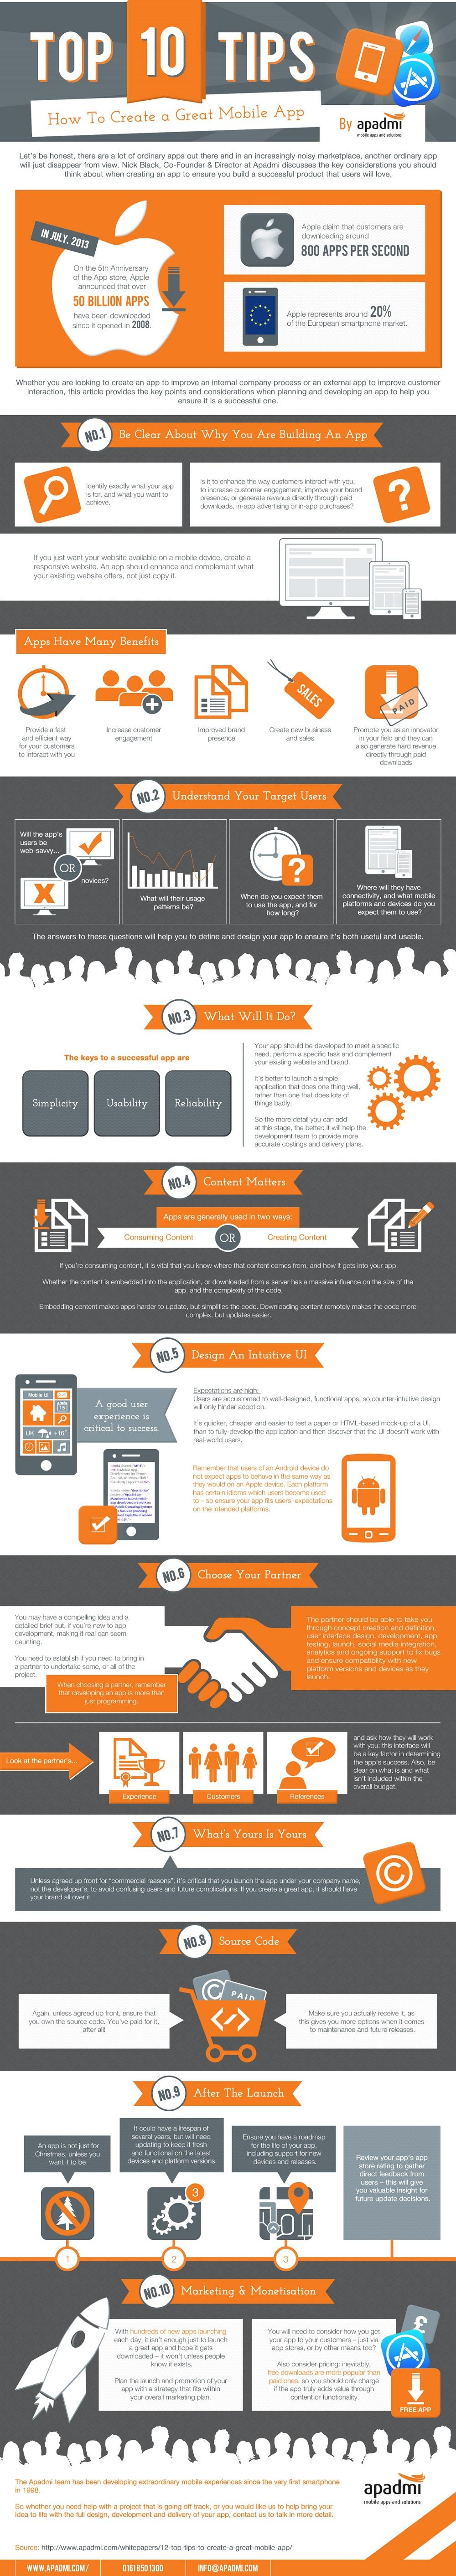 how-to-create-a-great-mobile-app-infographic